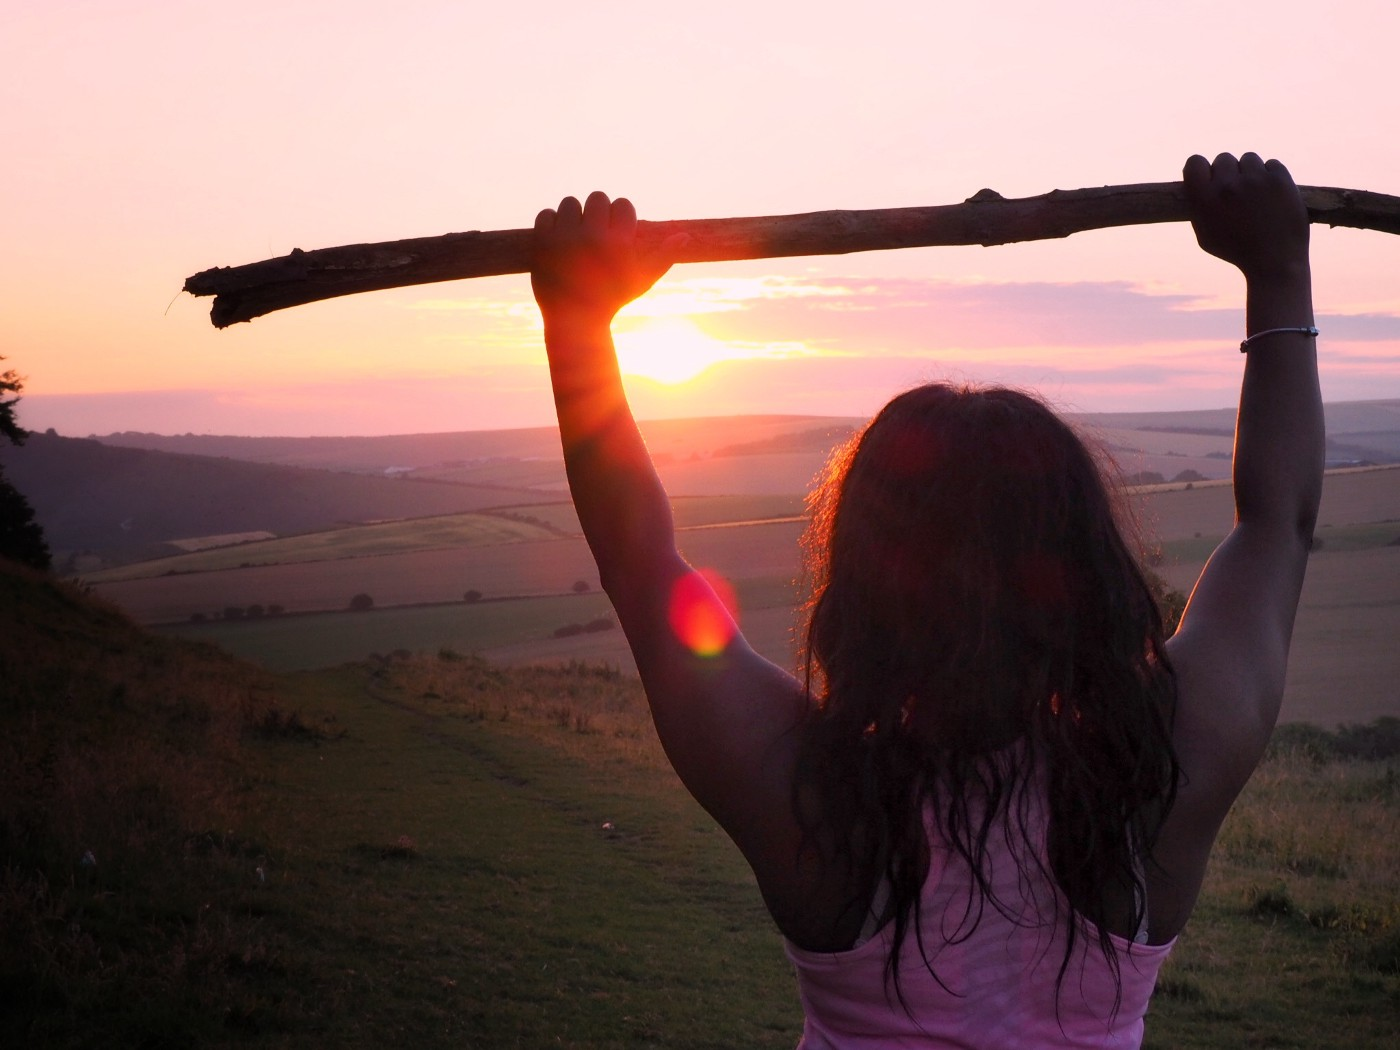 Girl at sunset holding a stick over her head, backlit by the sun.